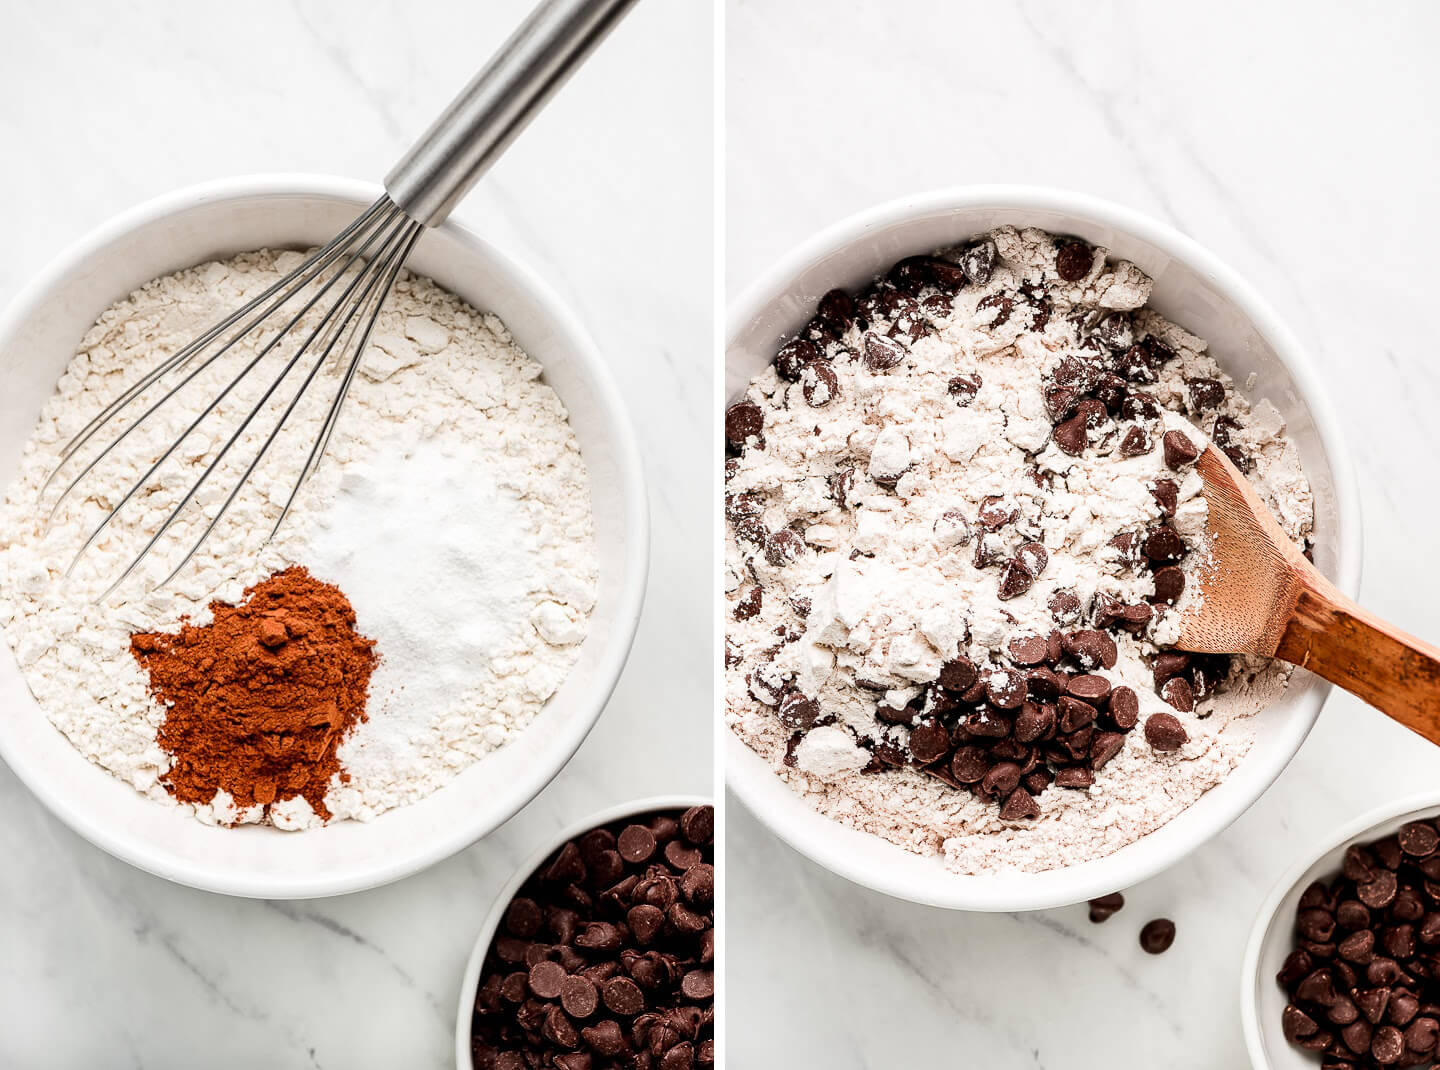 Dry ingredients in a mixing bowl with chocolate chips to the side; chocolate chips stirred into dry ingredients.